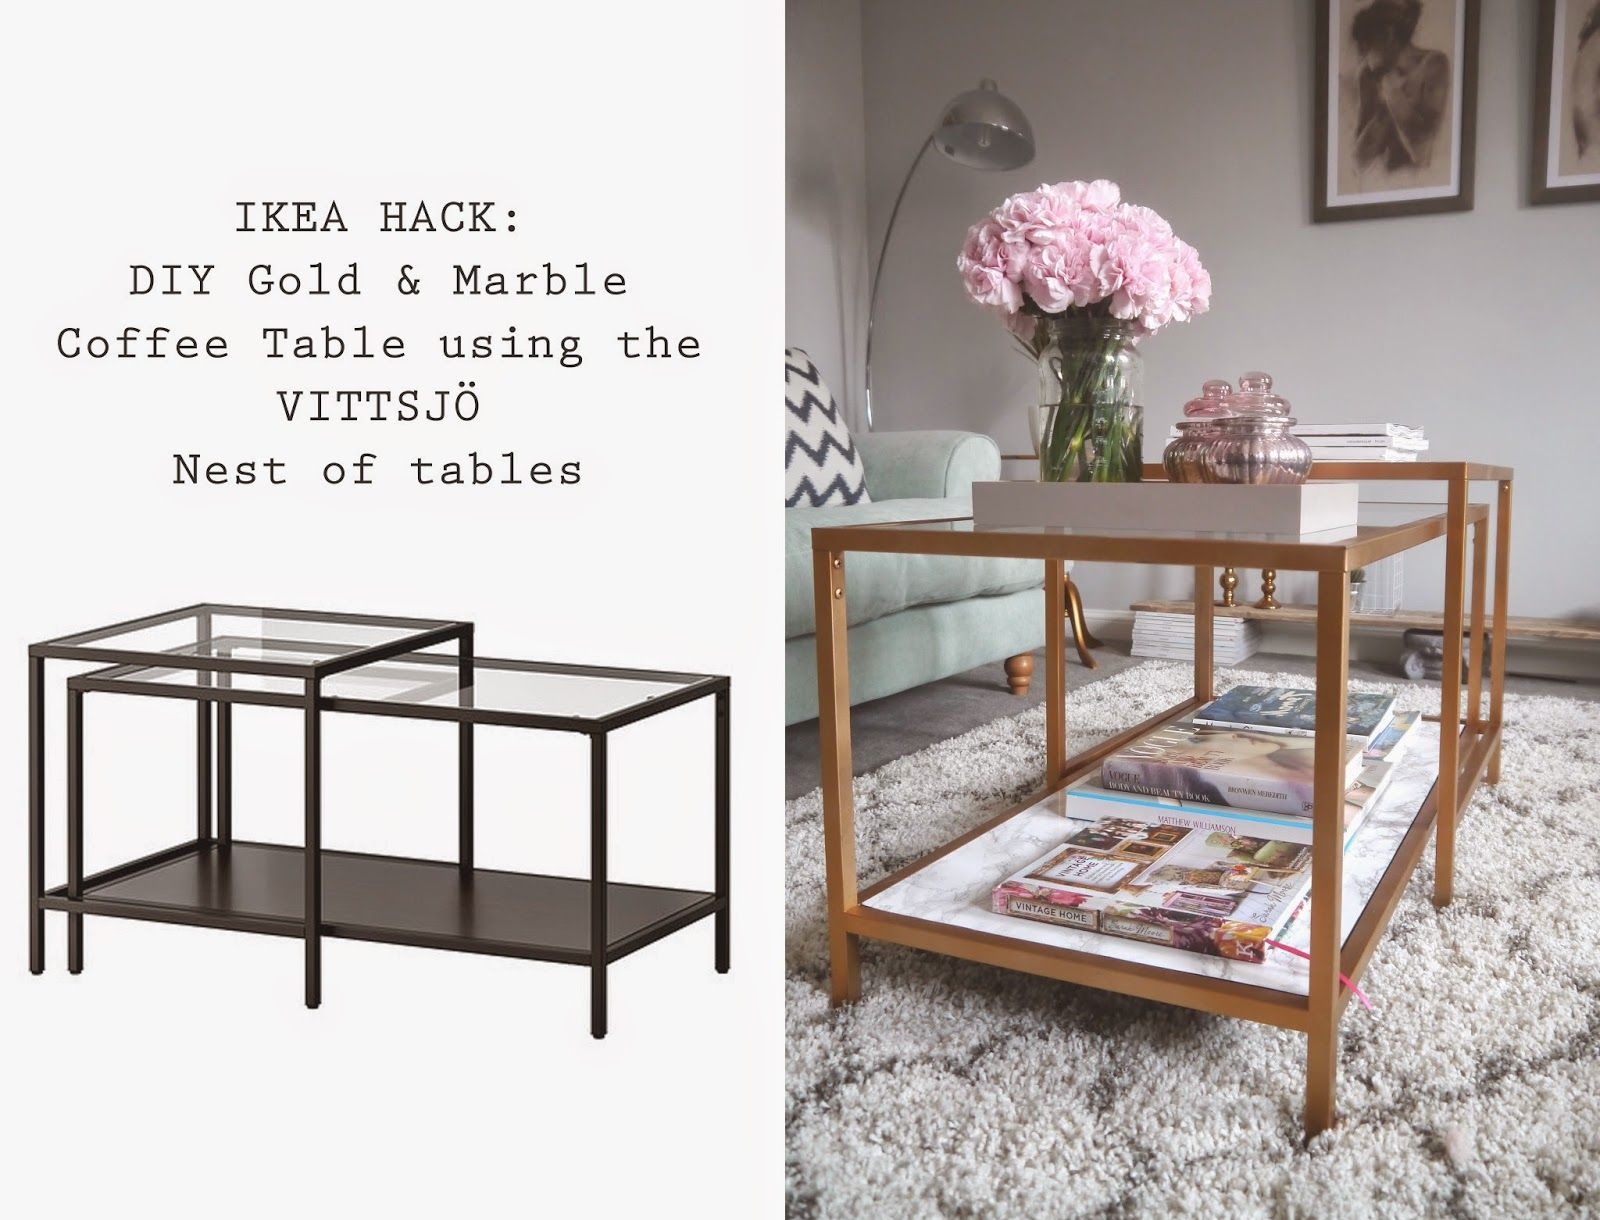 Vittsjo laptop table to upscale side table get home decorating - Ikea Hack Diy Gold And Marble Coffee Table Using The Vittsjo Nest Of Tables